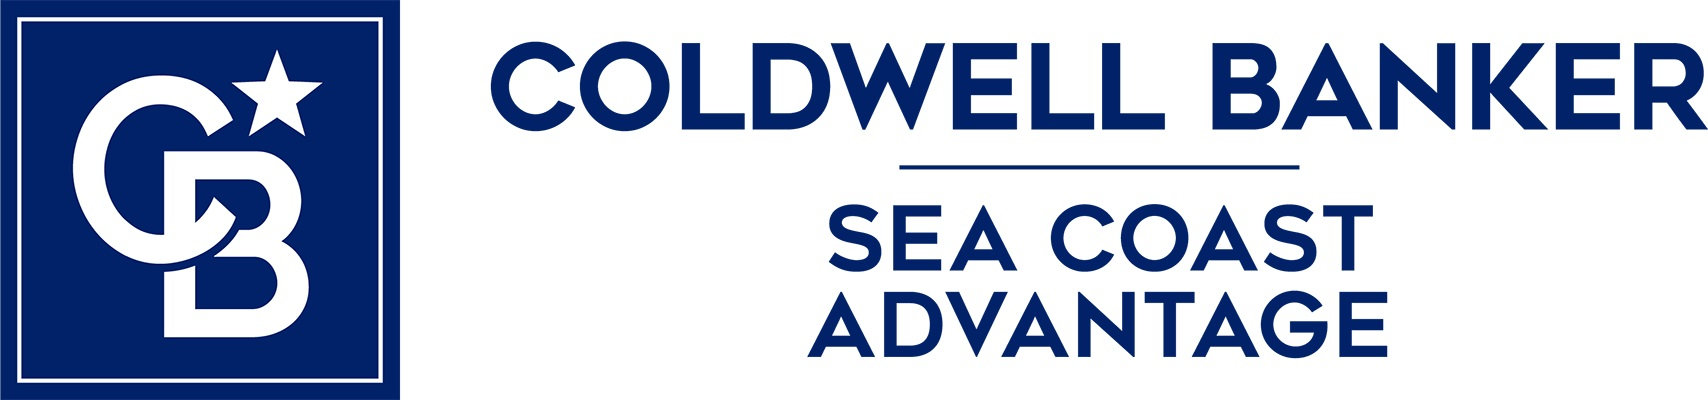 Claudia Sherman - Coldwell Banker Sea Coast Advantage Realty